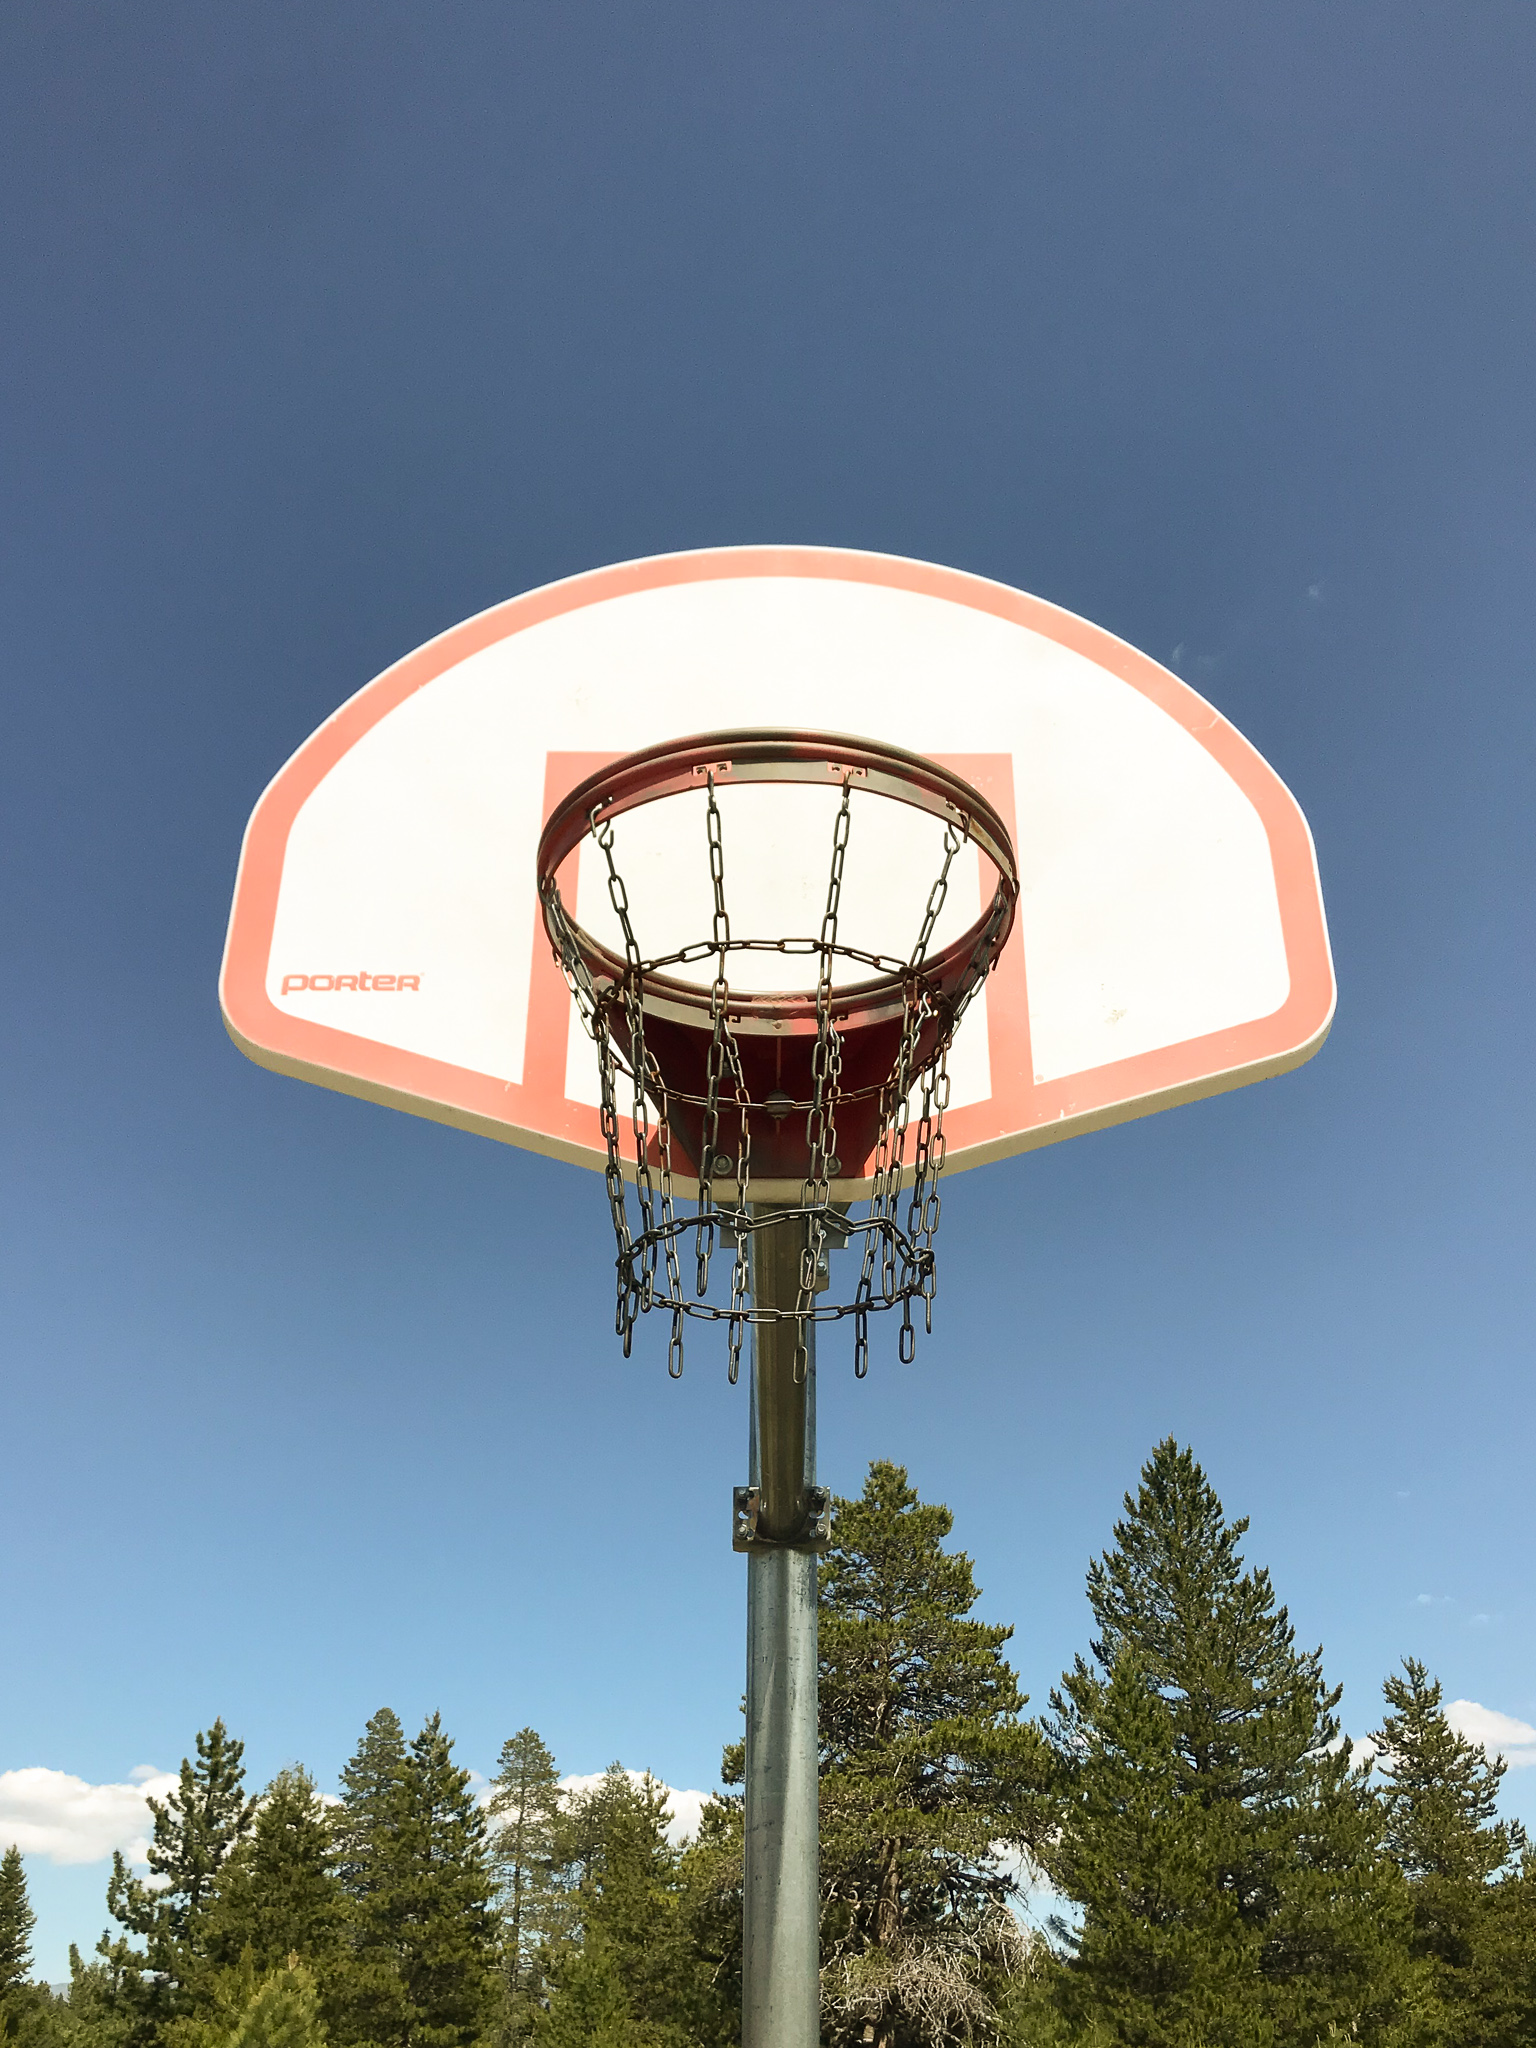 Metal net basketball rim in the forest